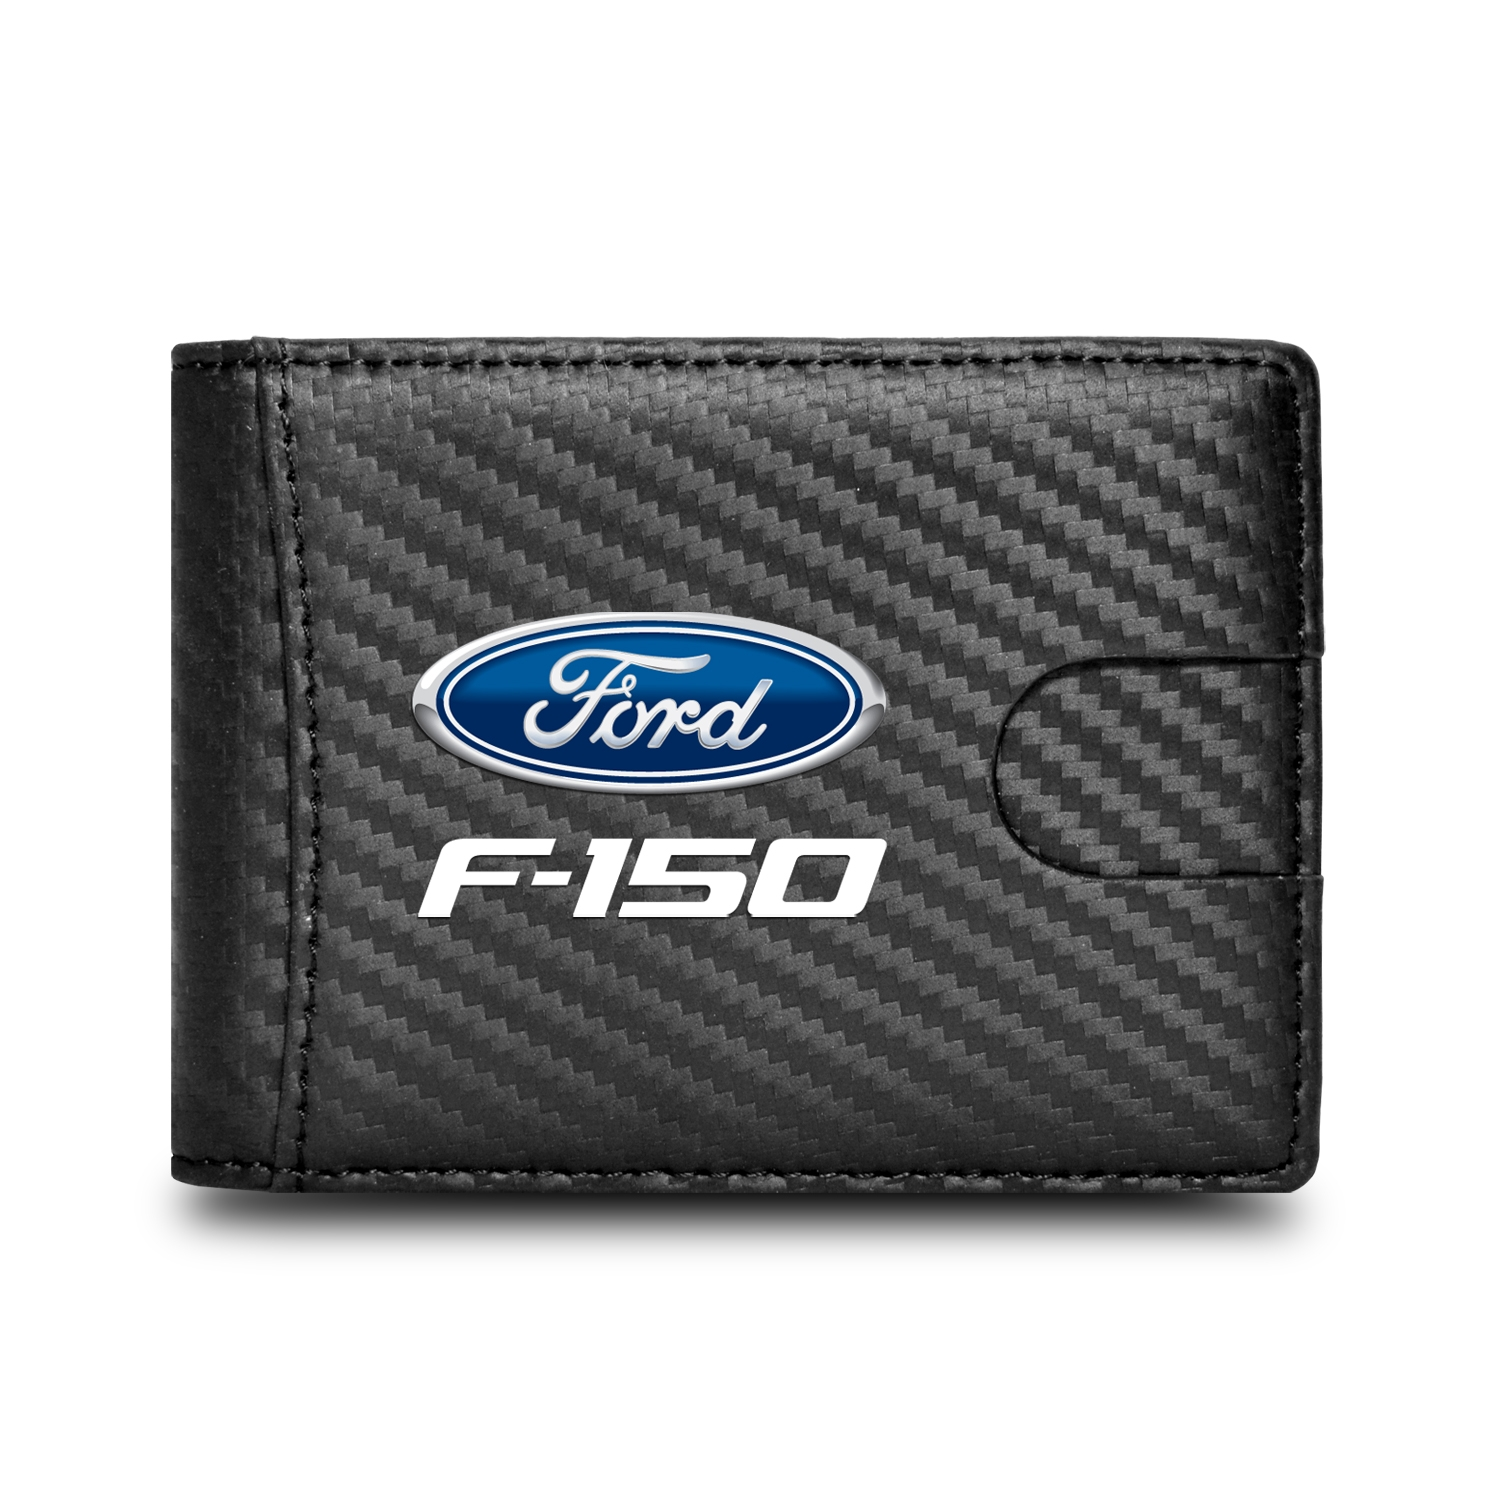 Ford F-150 Black Slim Real Leather Carbon Fiber Patterns RFID Blocking Bi-fold Wallet